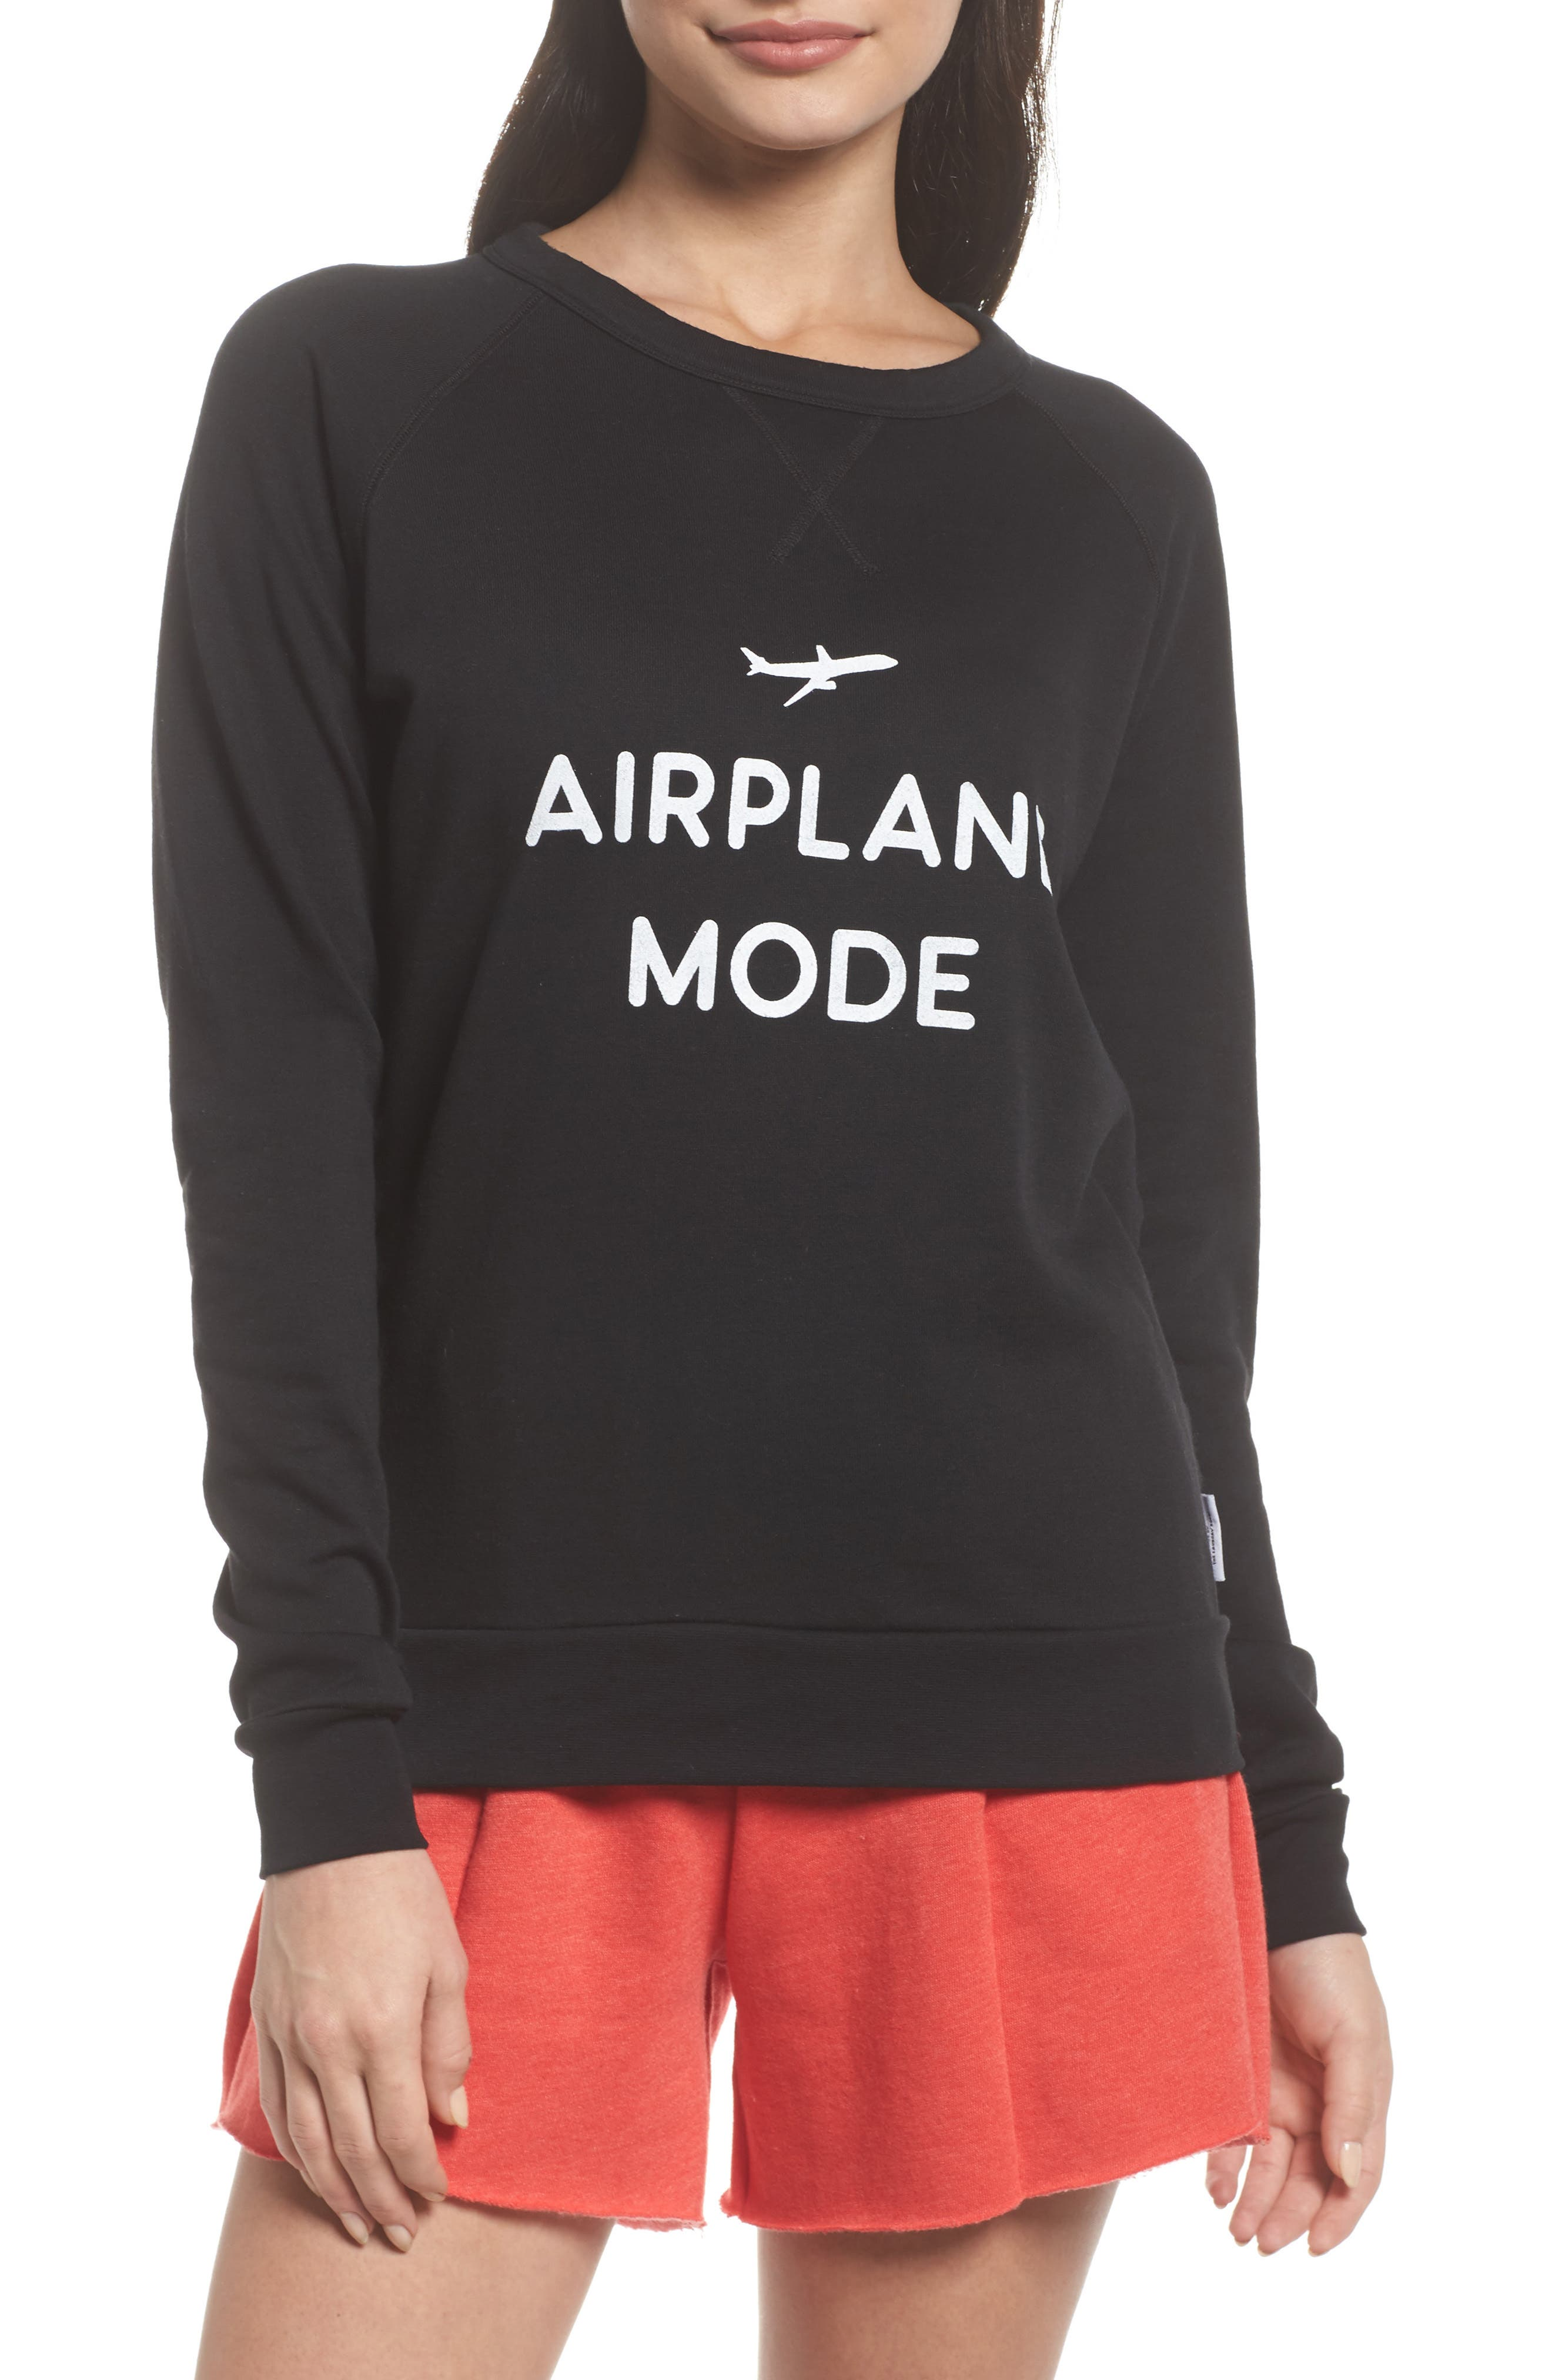 THE LAUNDRY ROOM Airplane Mode Cozy Lounge Sweatshirt, Main, color, 001